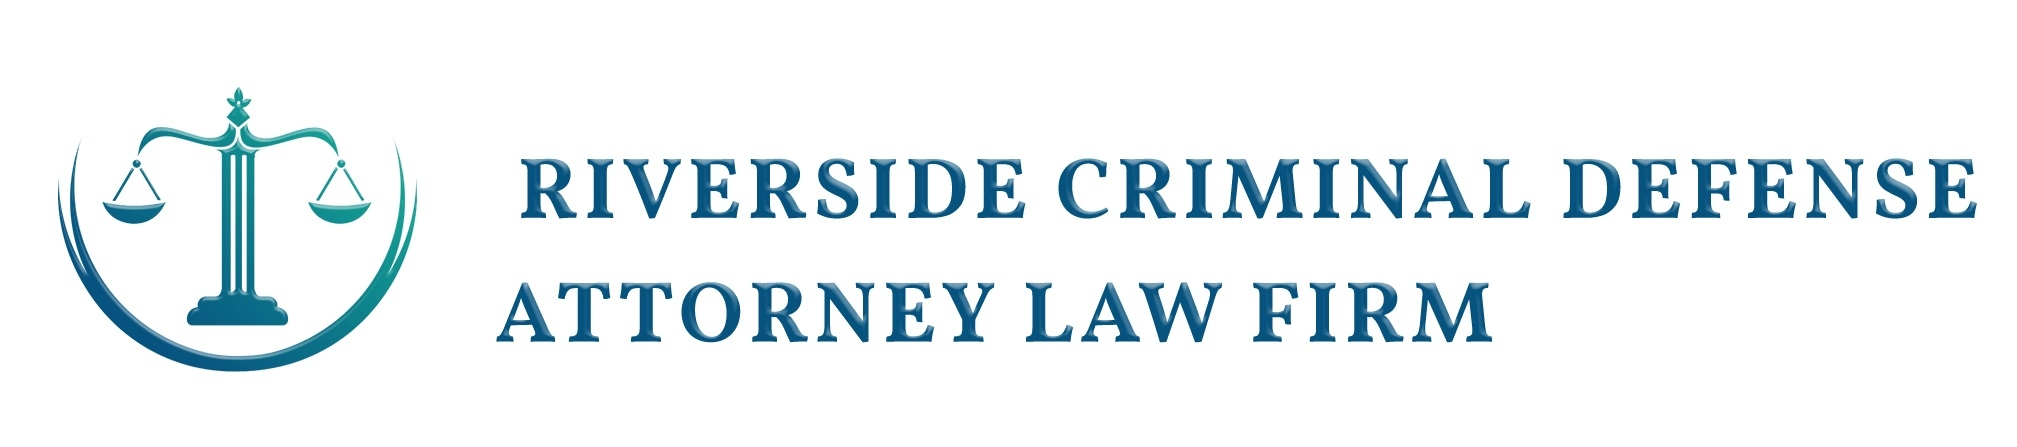 Riverside Criminal Defense Attorney Law Firm (@riversidecattorney) Cover Image